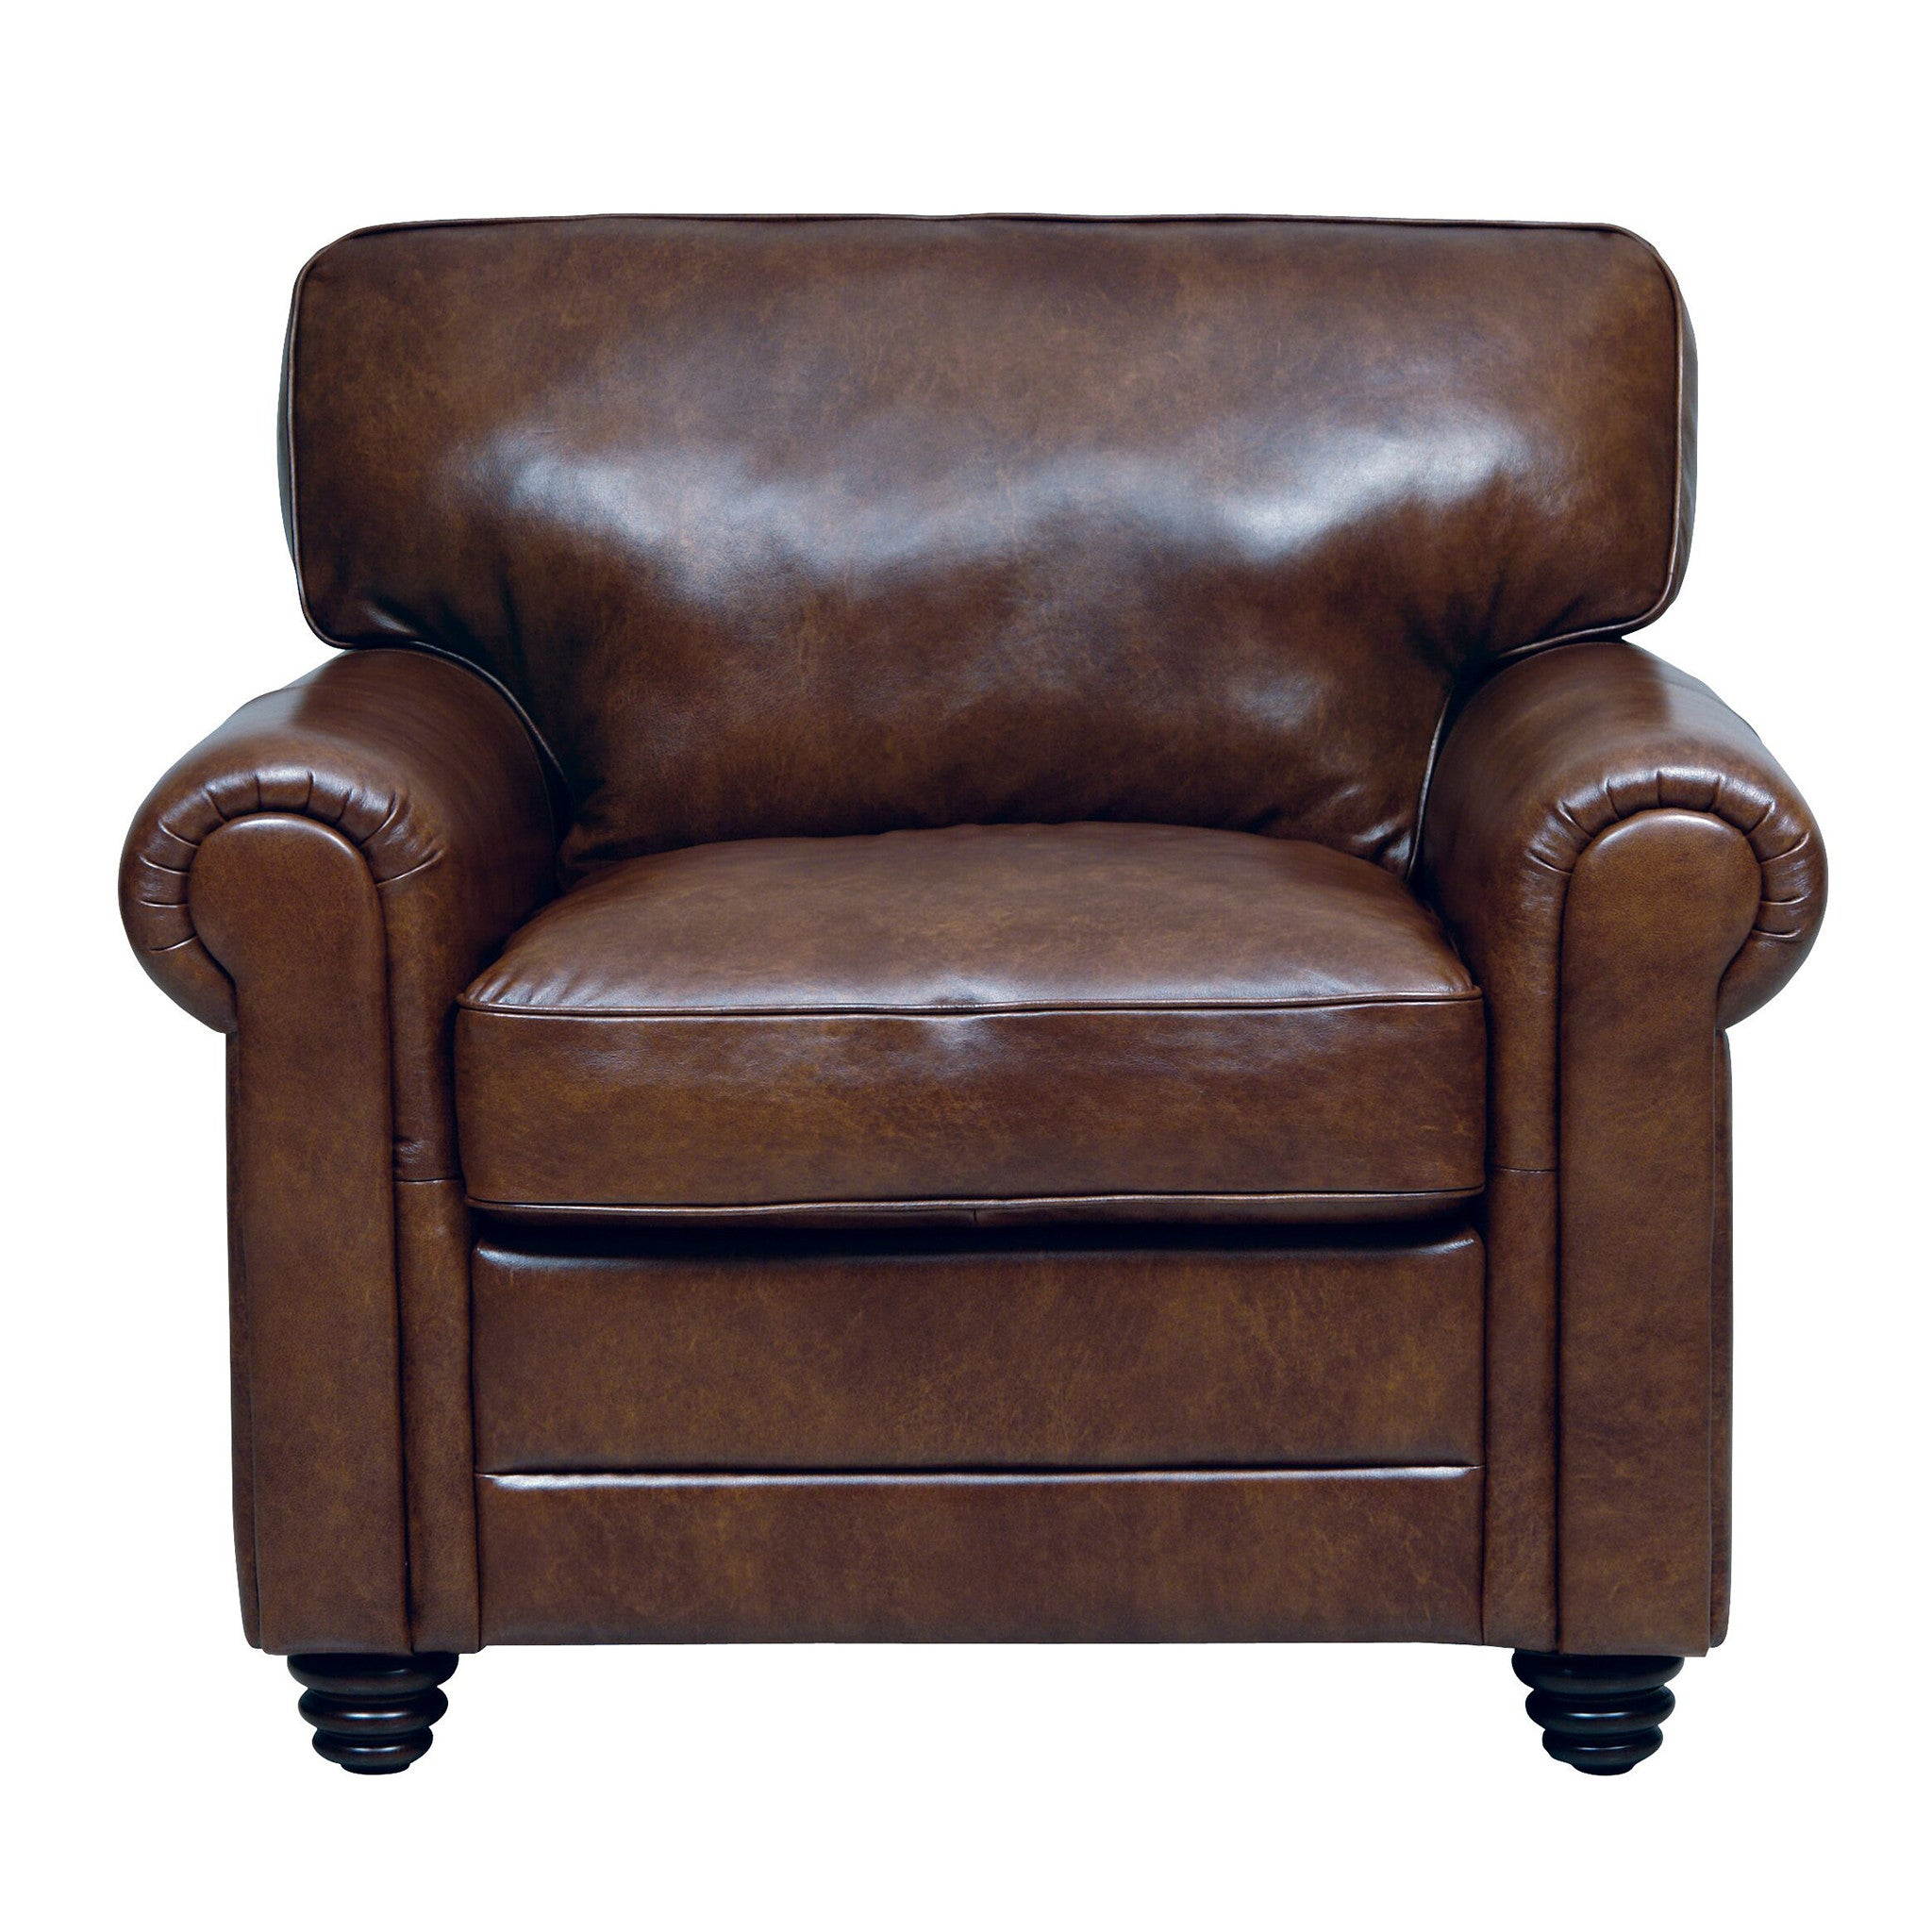 Andrew Leather Chair  sc 1 st  Madison Creek Furnishings & Andrew Leather Chair - Madison Creek Furnishings